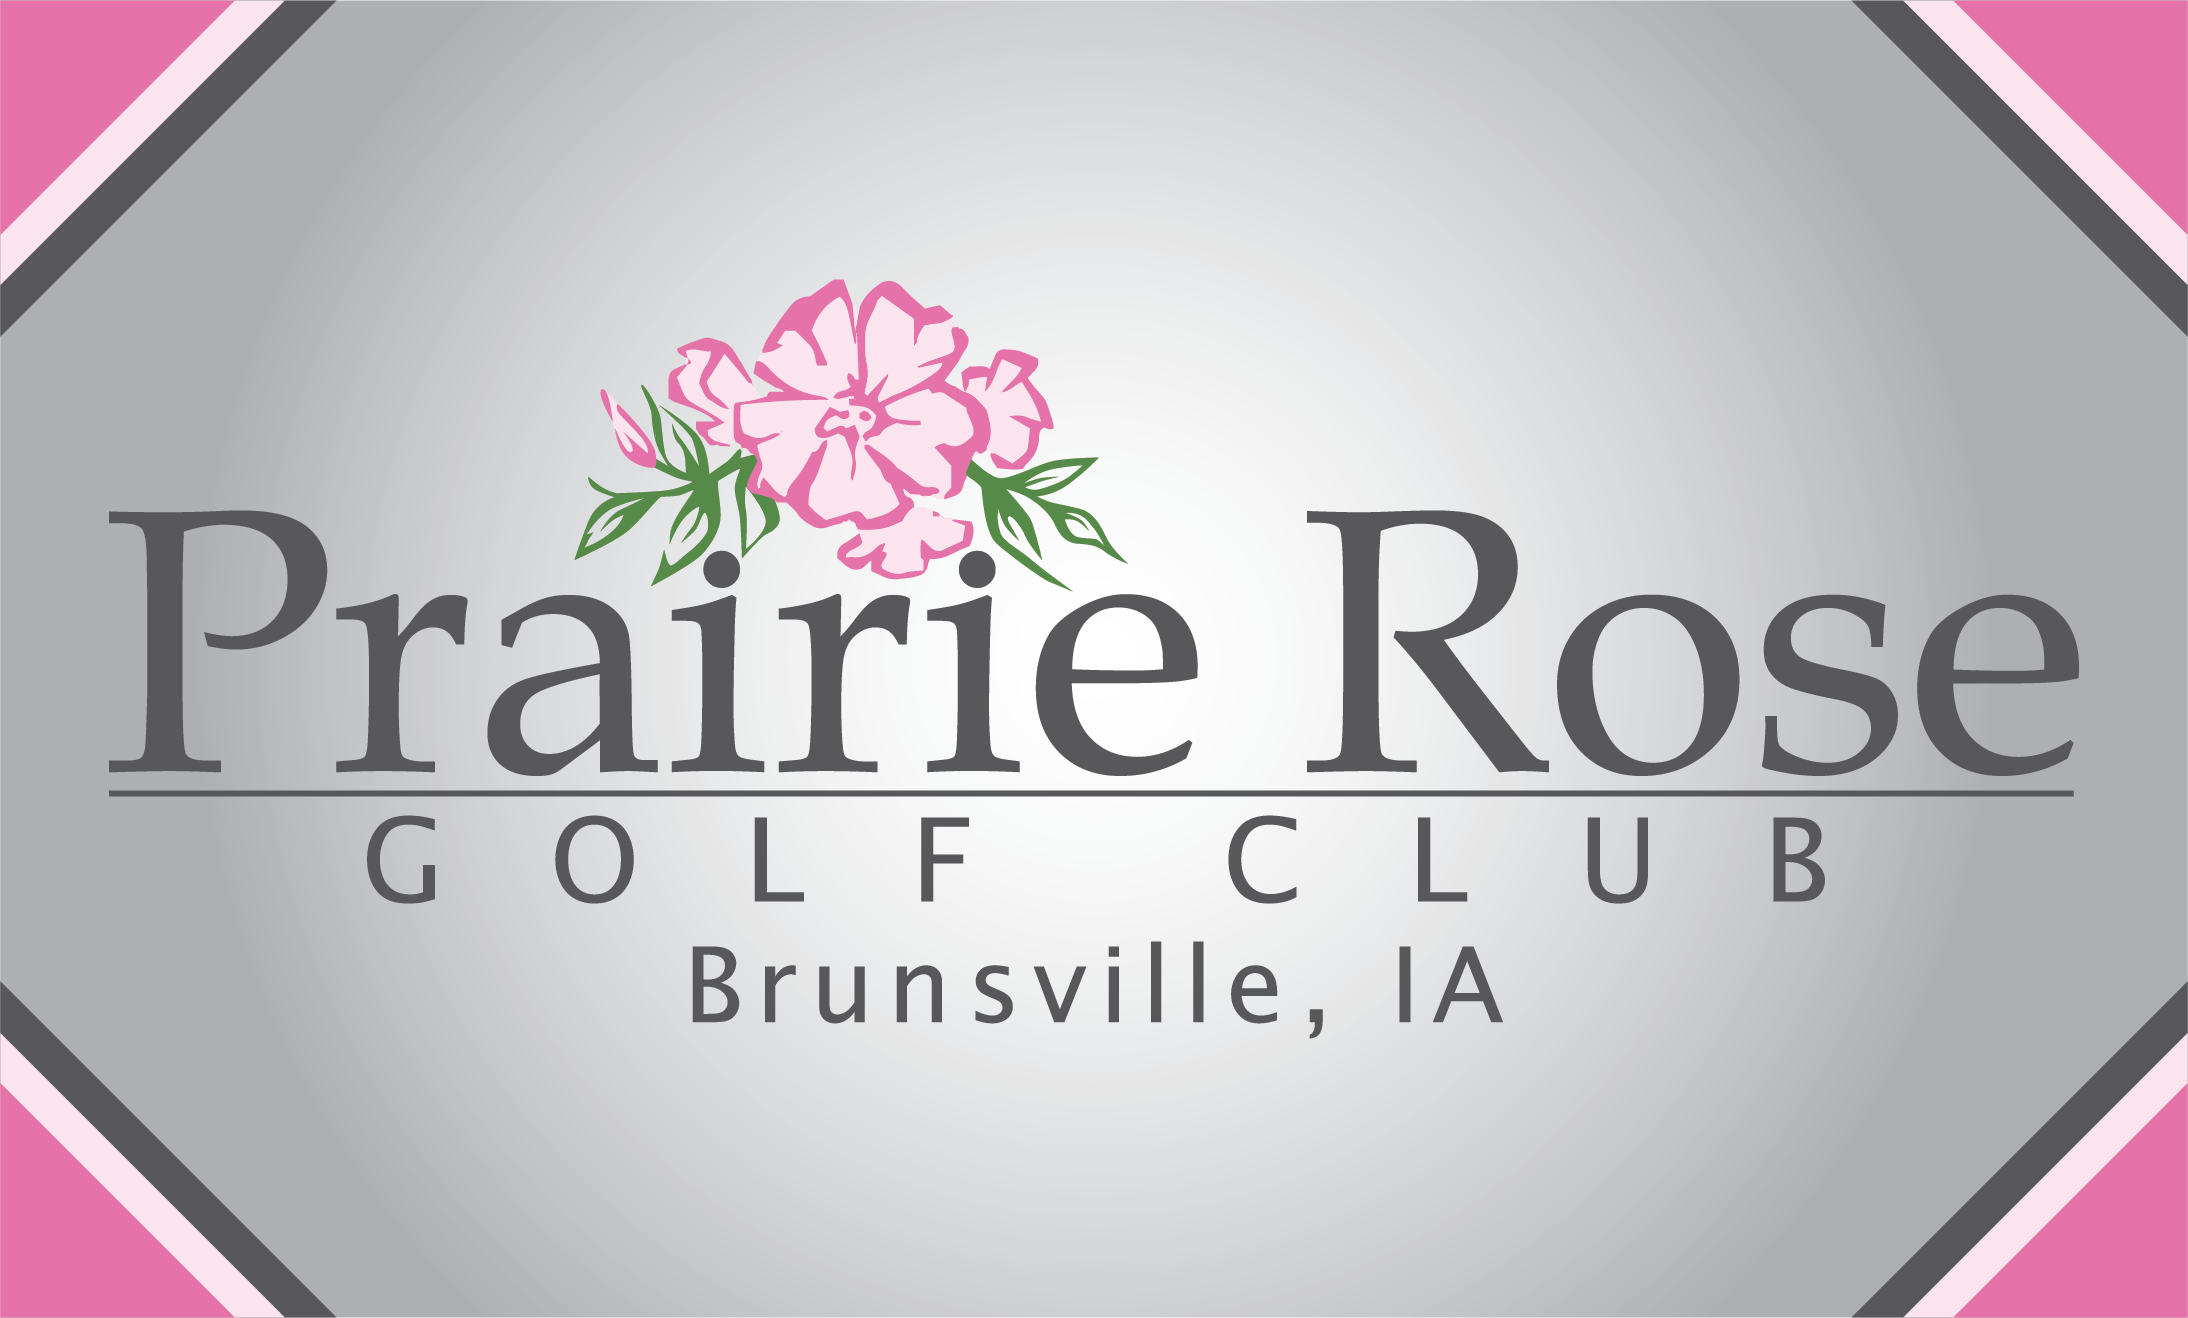 Prairie Rose Golf Club